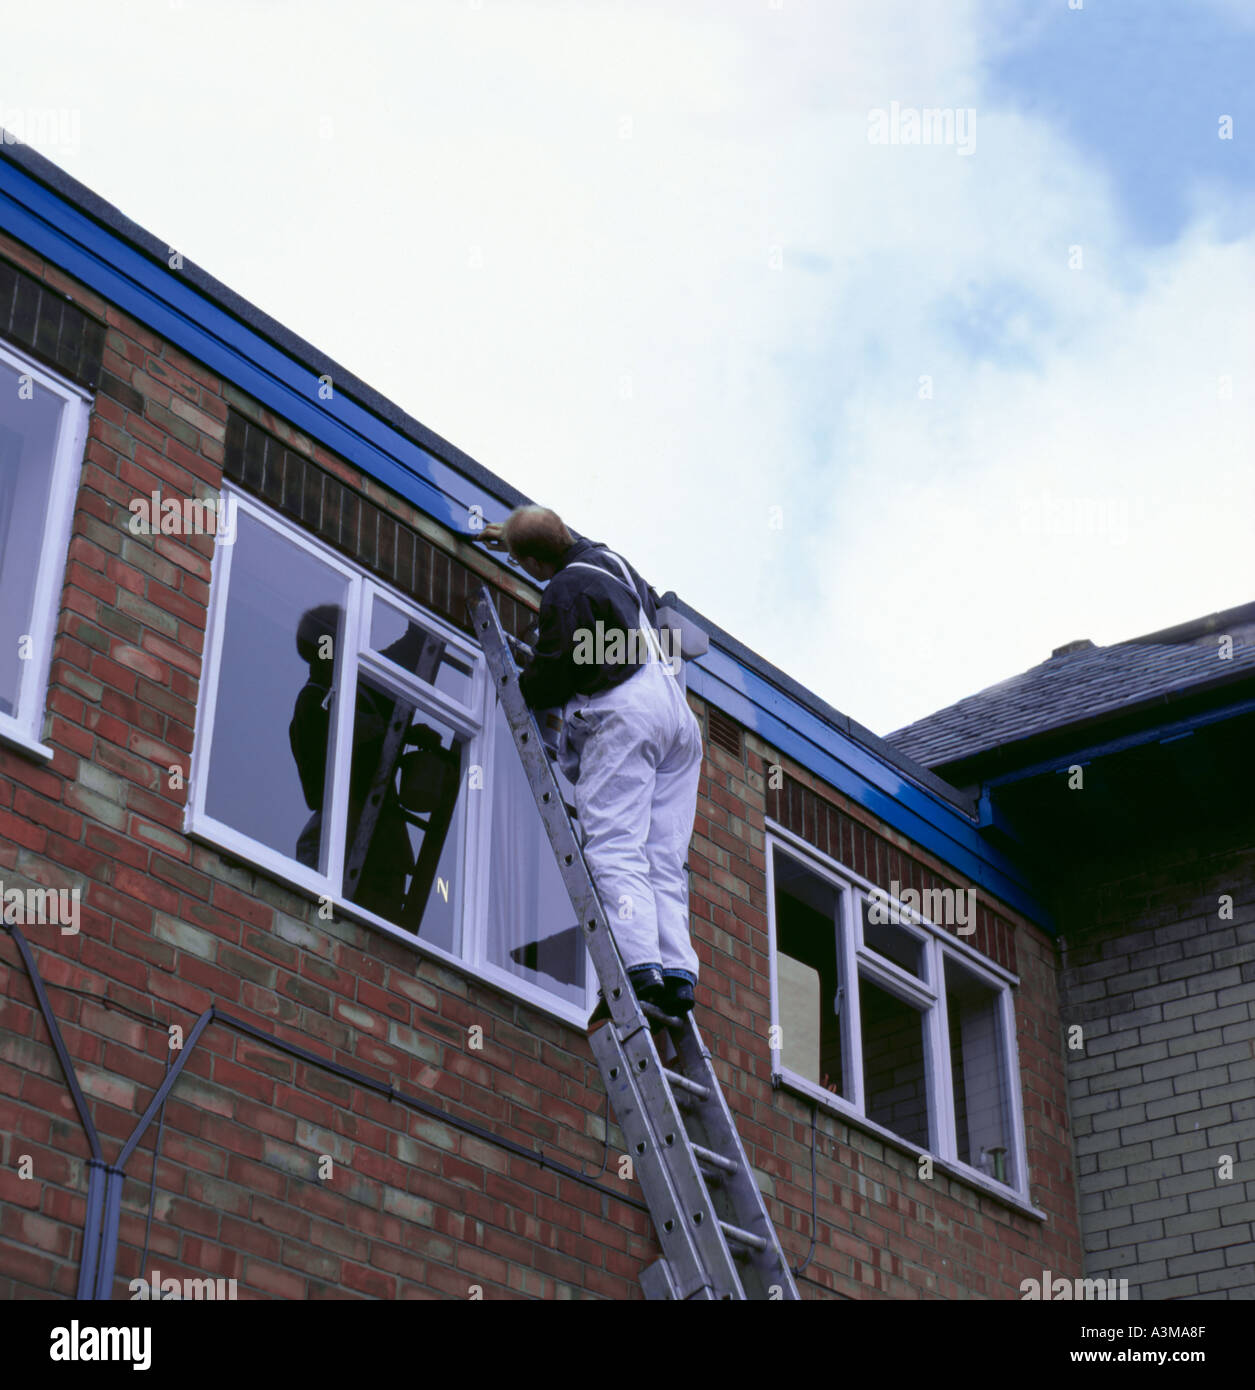 How to paint fascia boards - Home Maintenance And Repair Man Up A Ladder Painting A Fascia Board